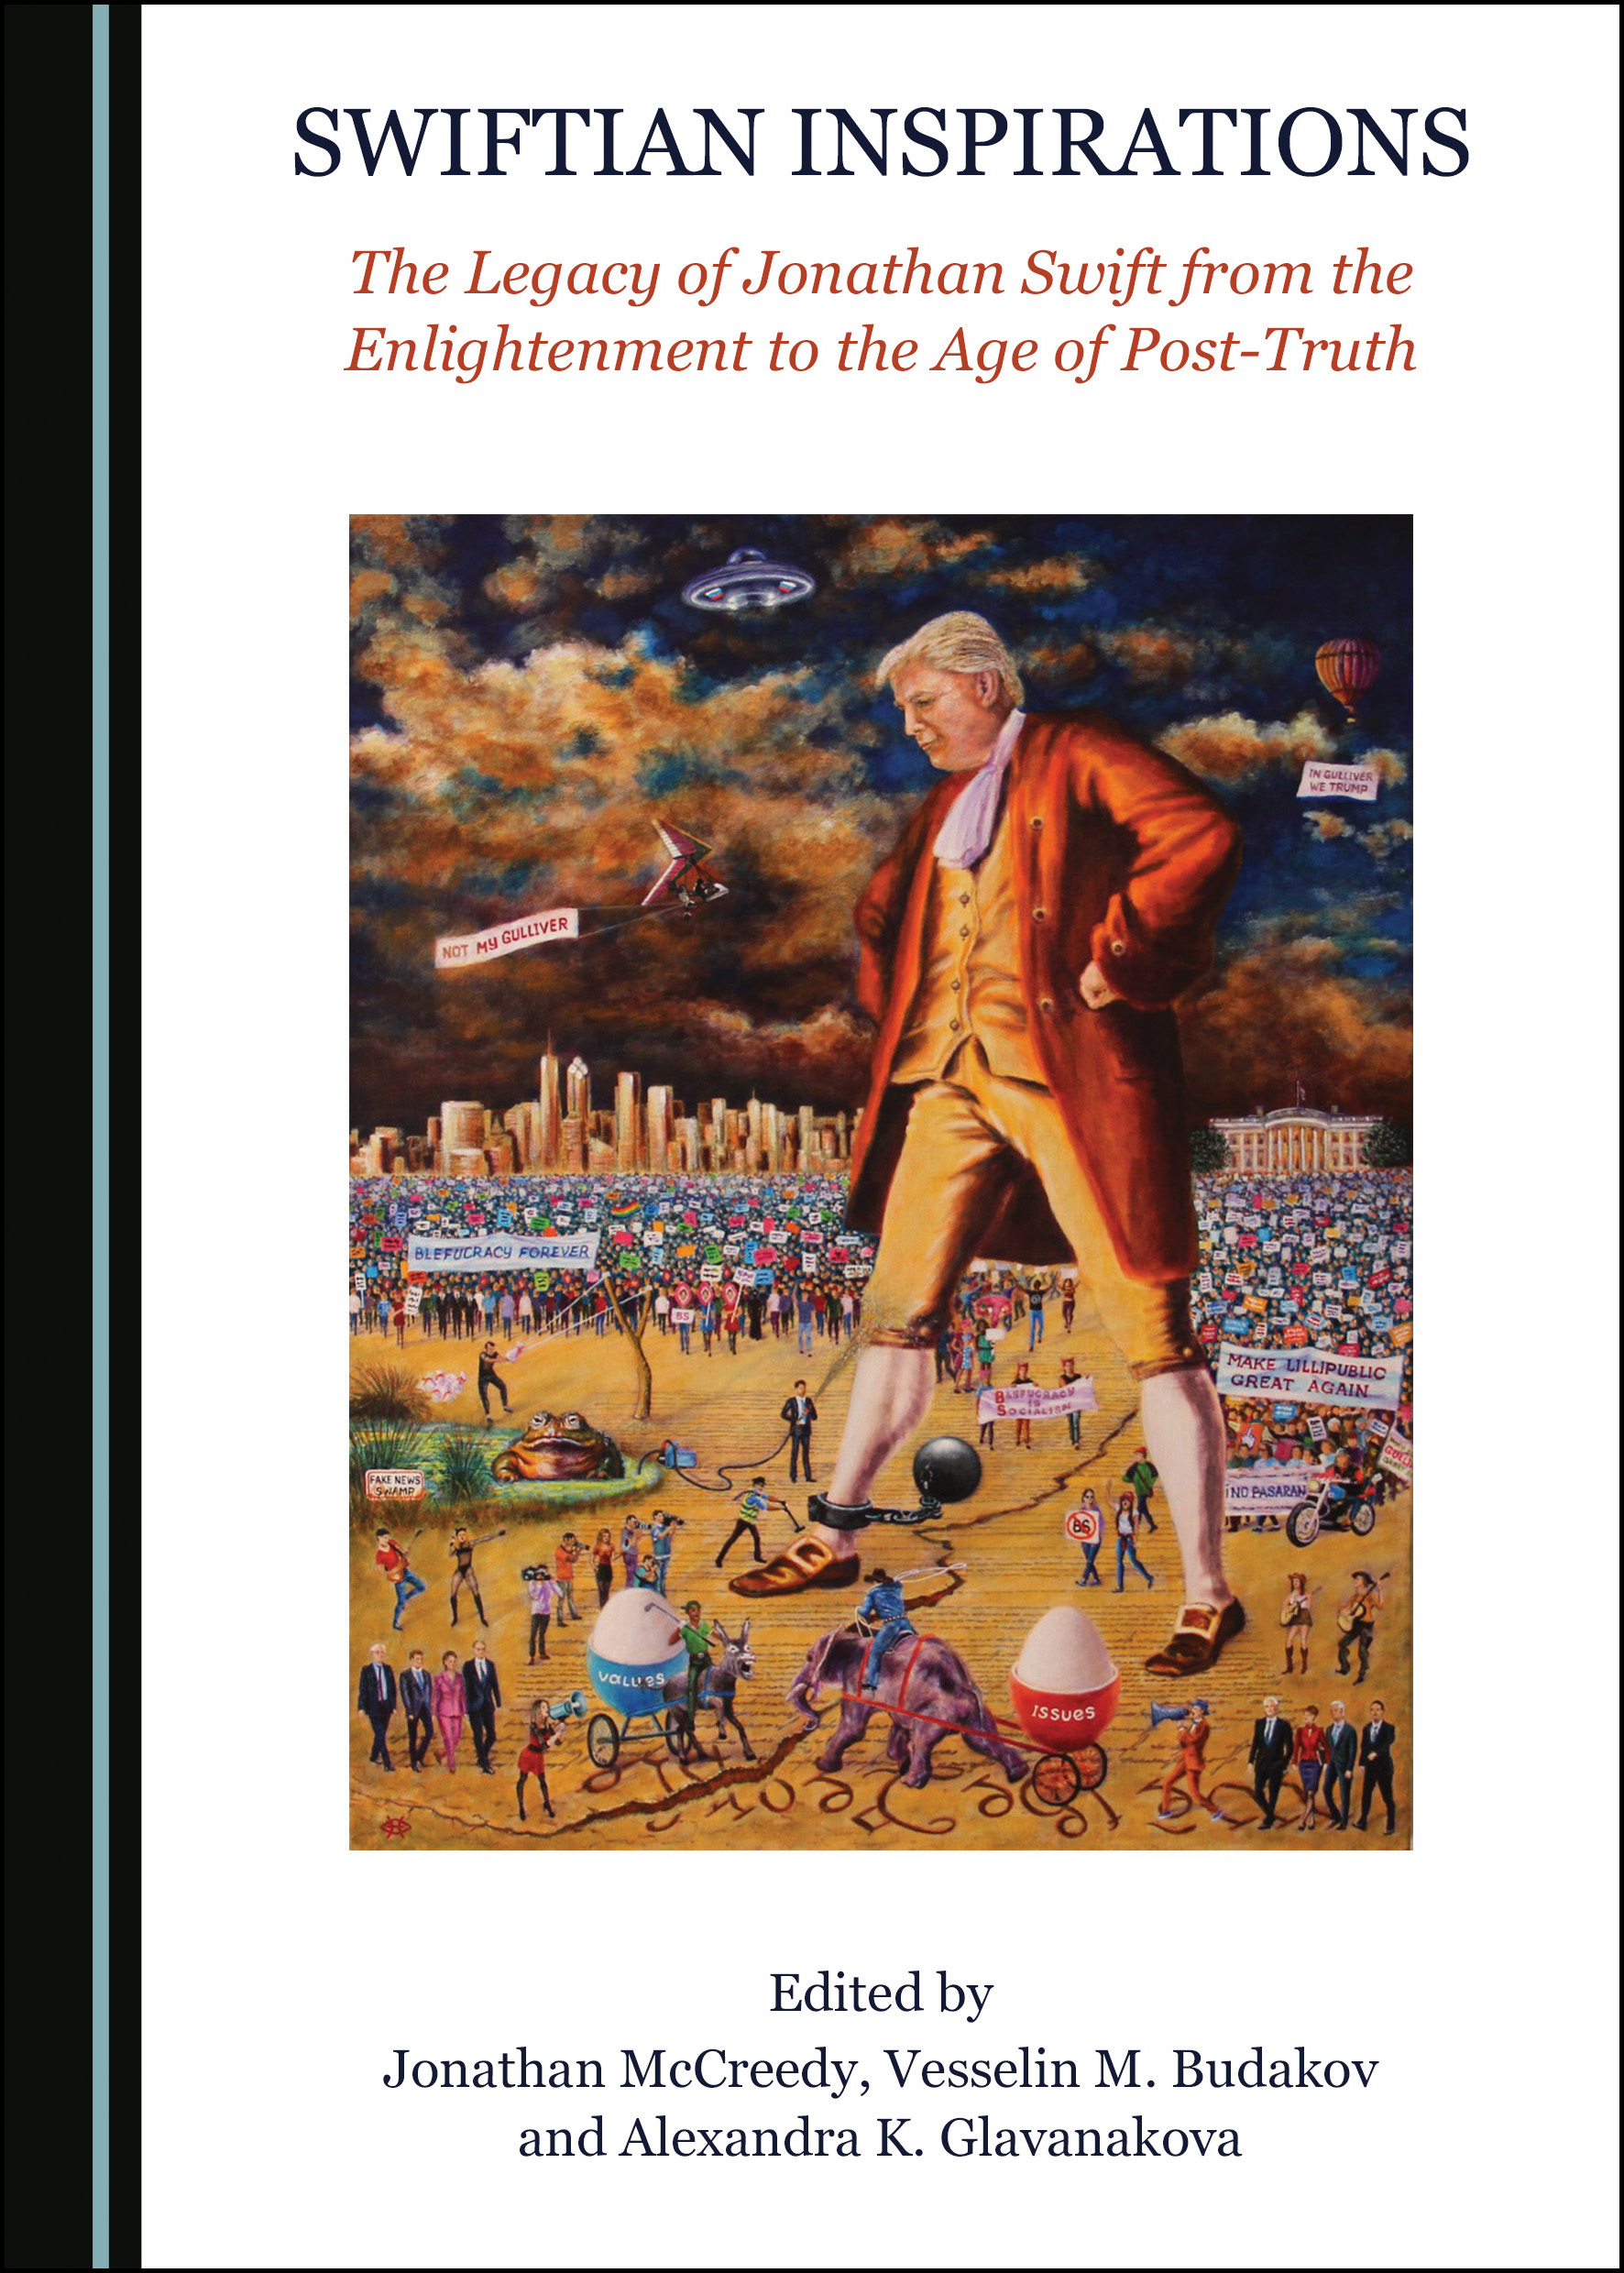 Swiftian Inspirations: The Legacy of Jonathan Swift from the Enlightenment to the Age of Post-Truth